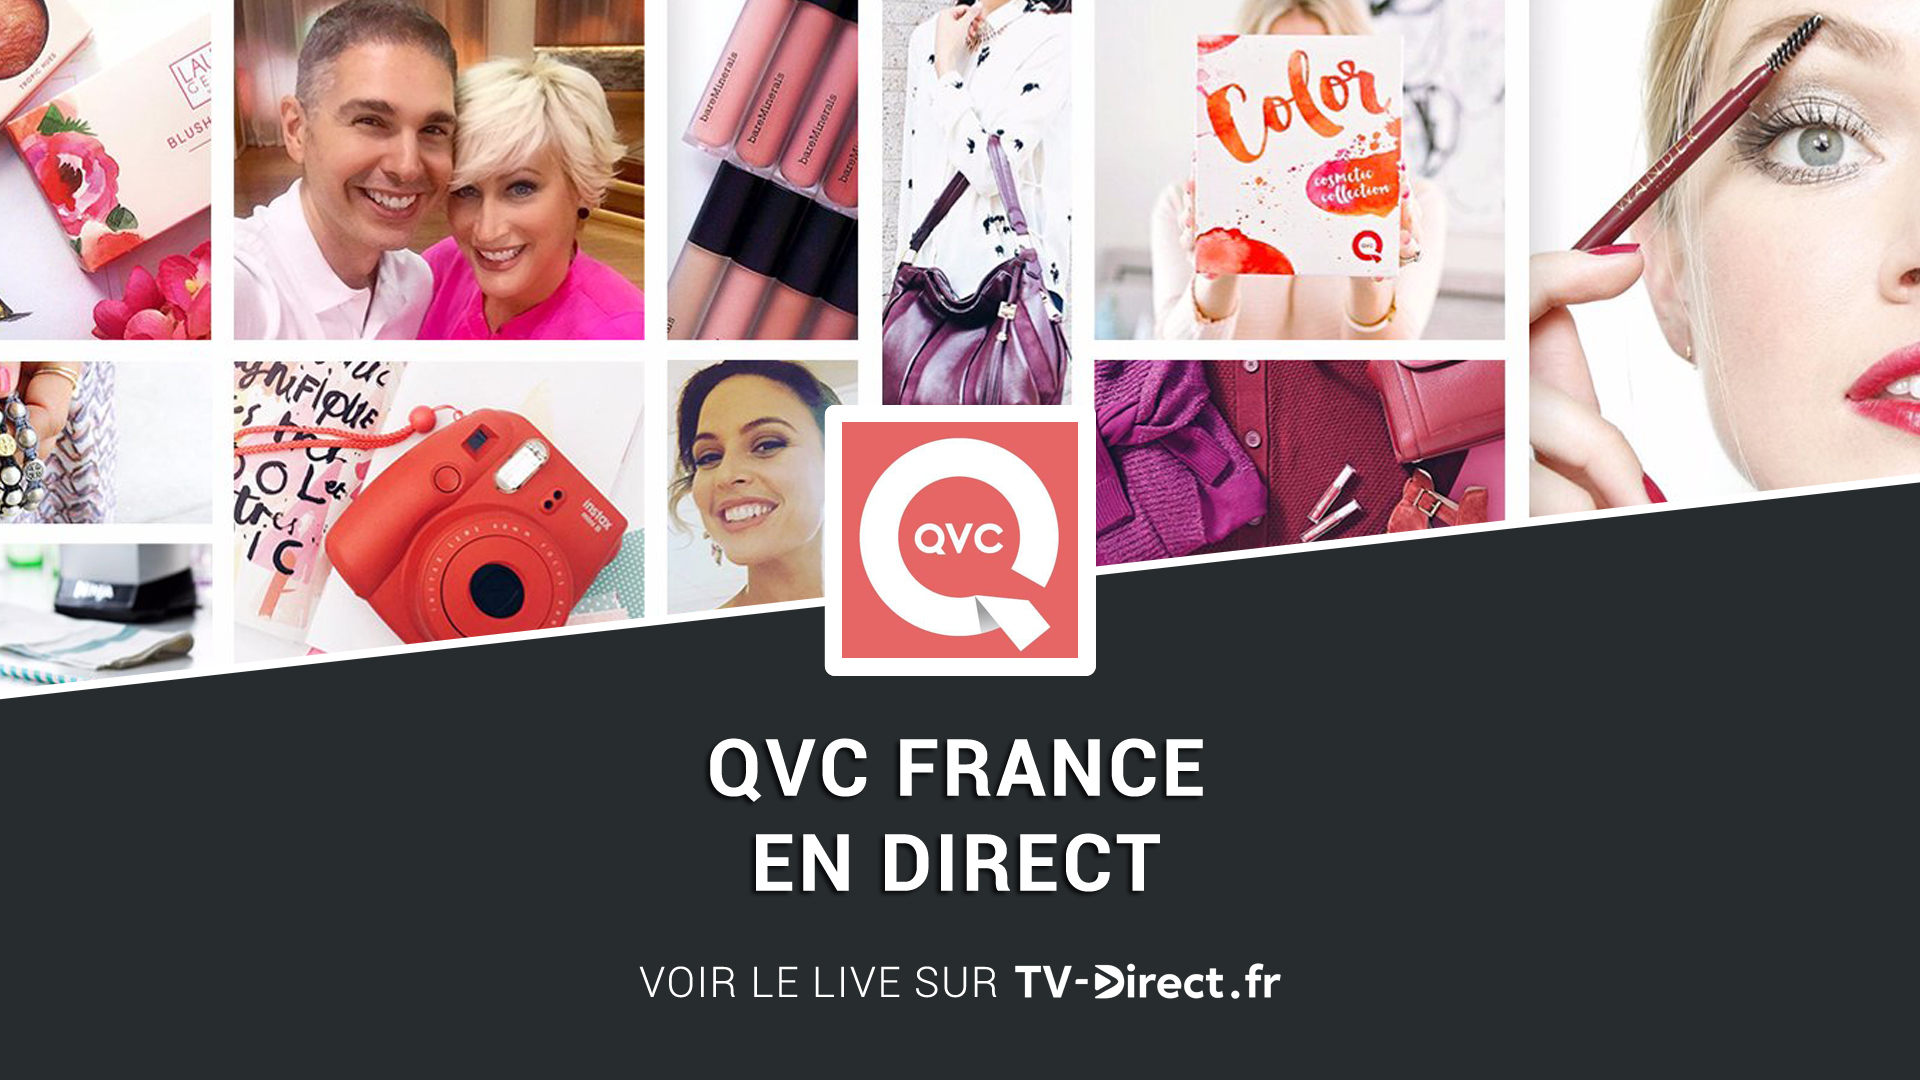 qvc france direct regarder qvc france live sur internet. Black Bedroom Furniture Sets. Home Design Ideas